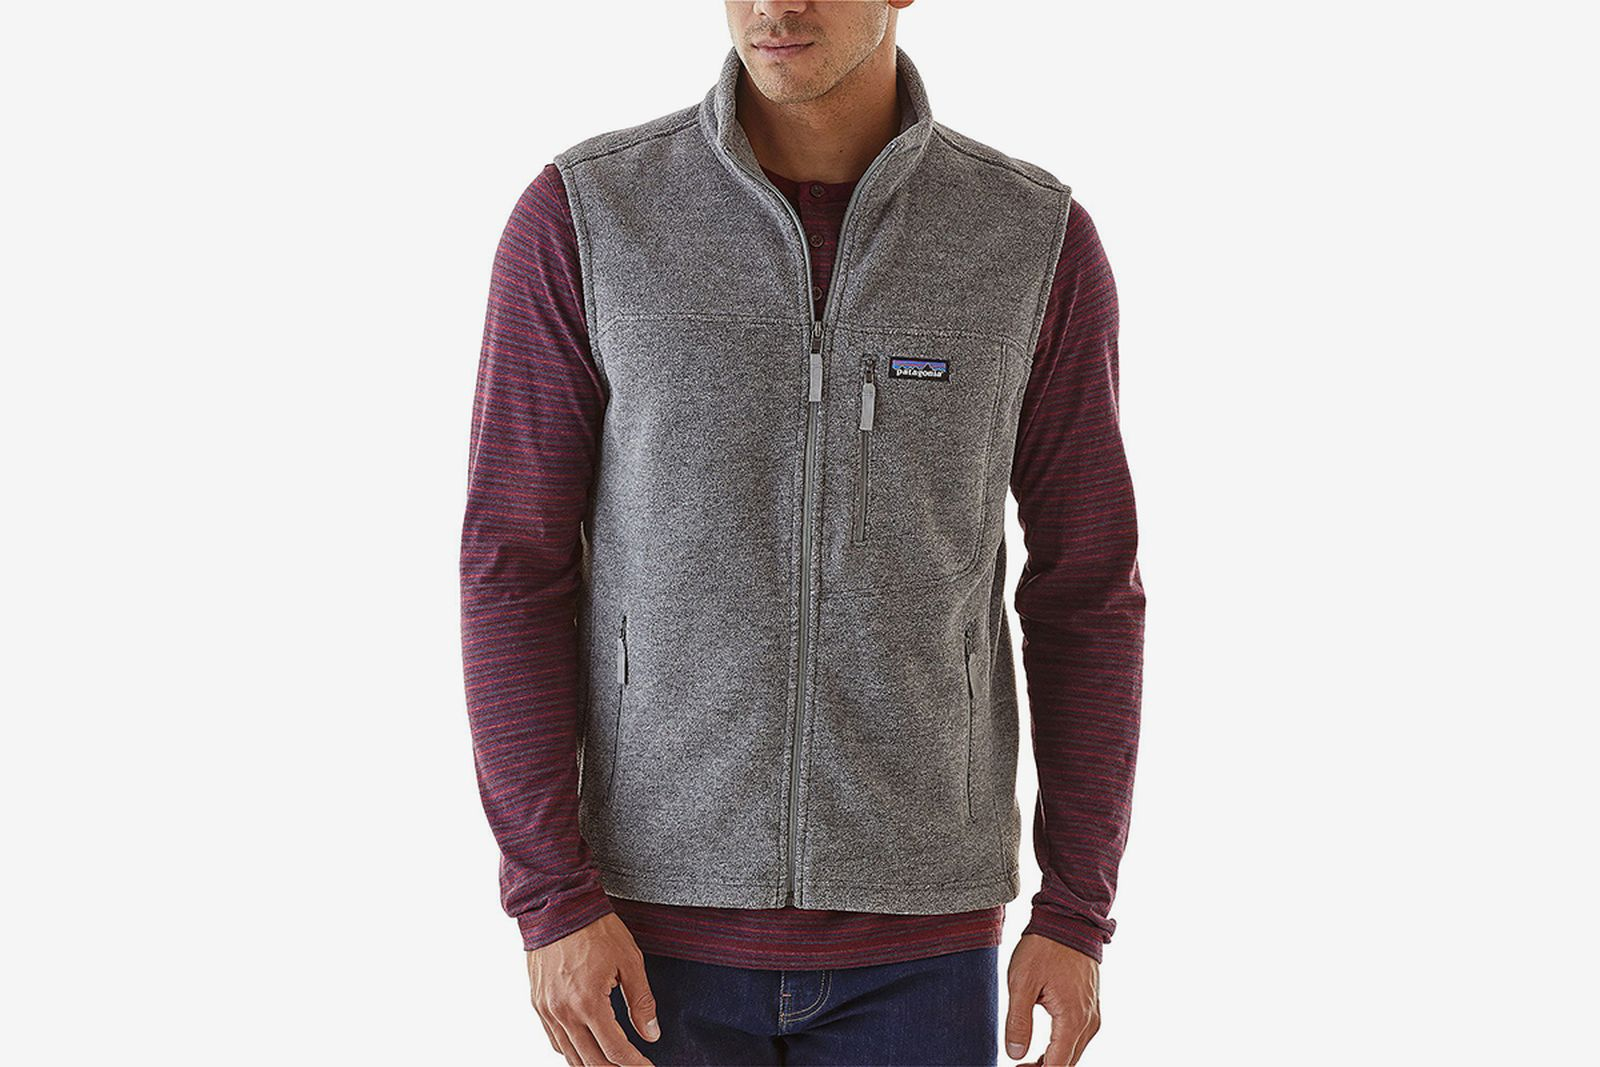 patagonia refusing to sell corporate vests